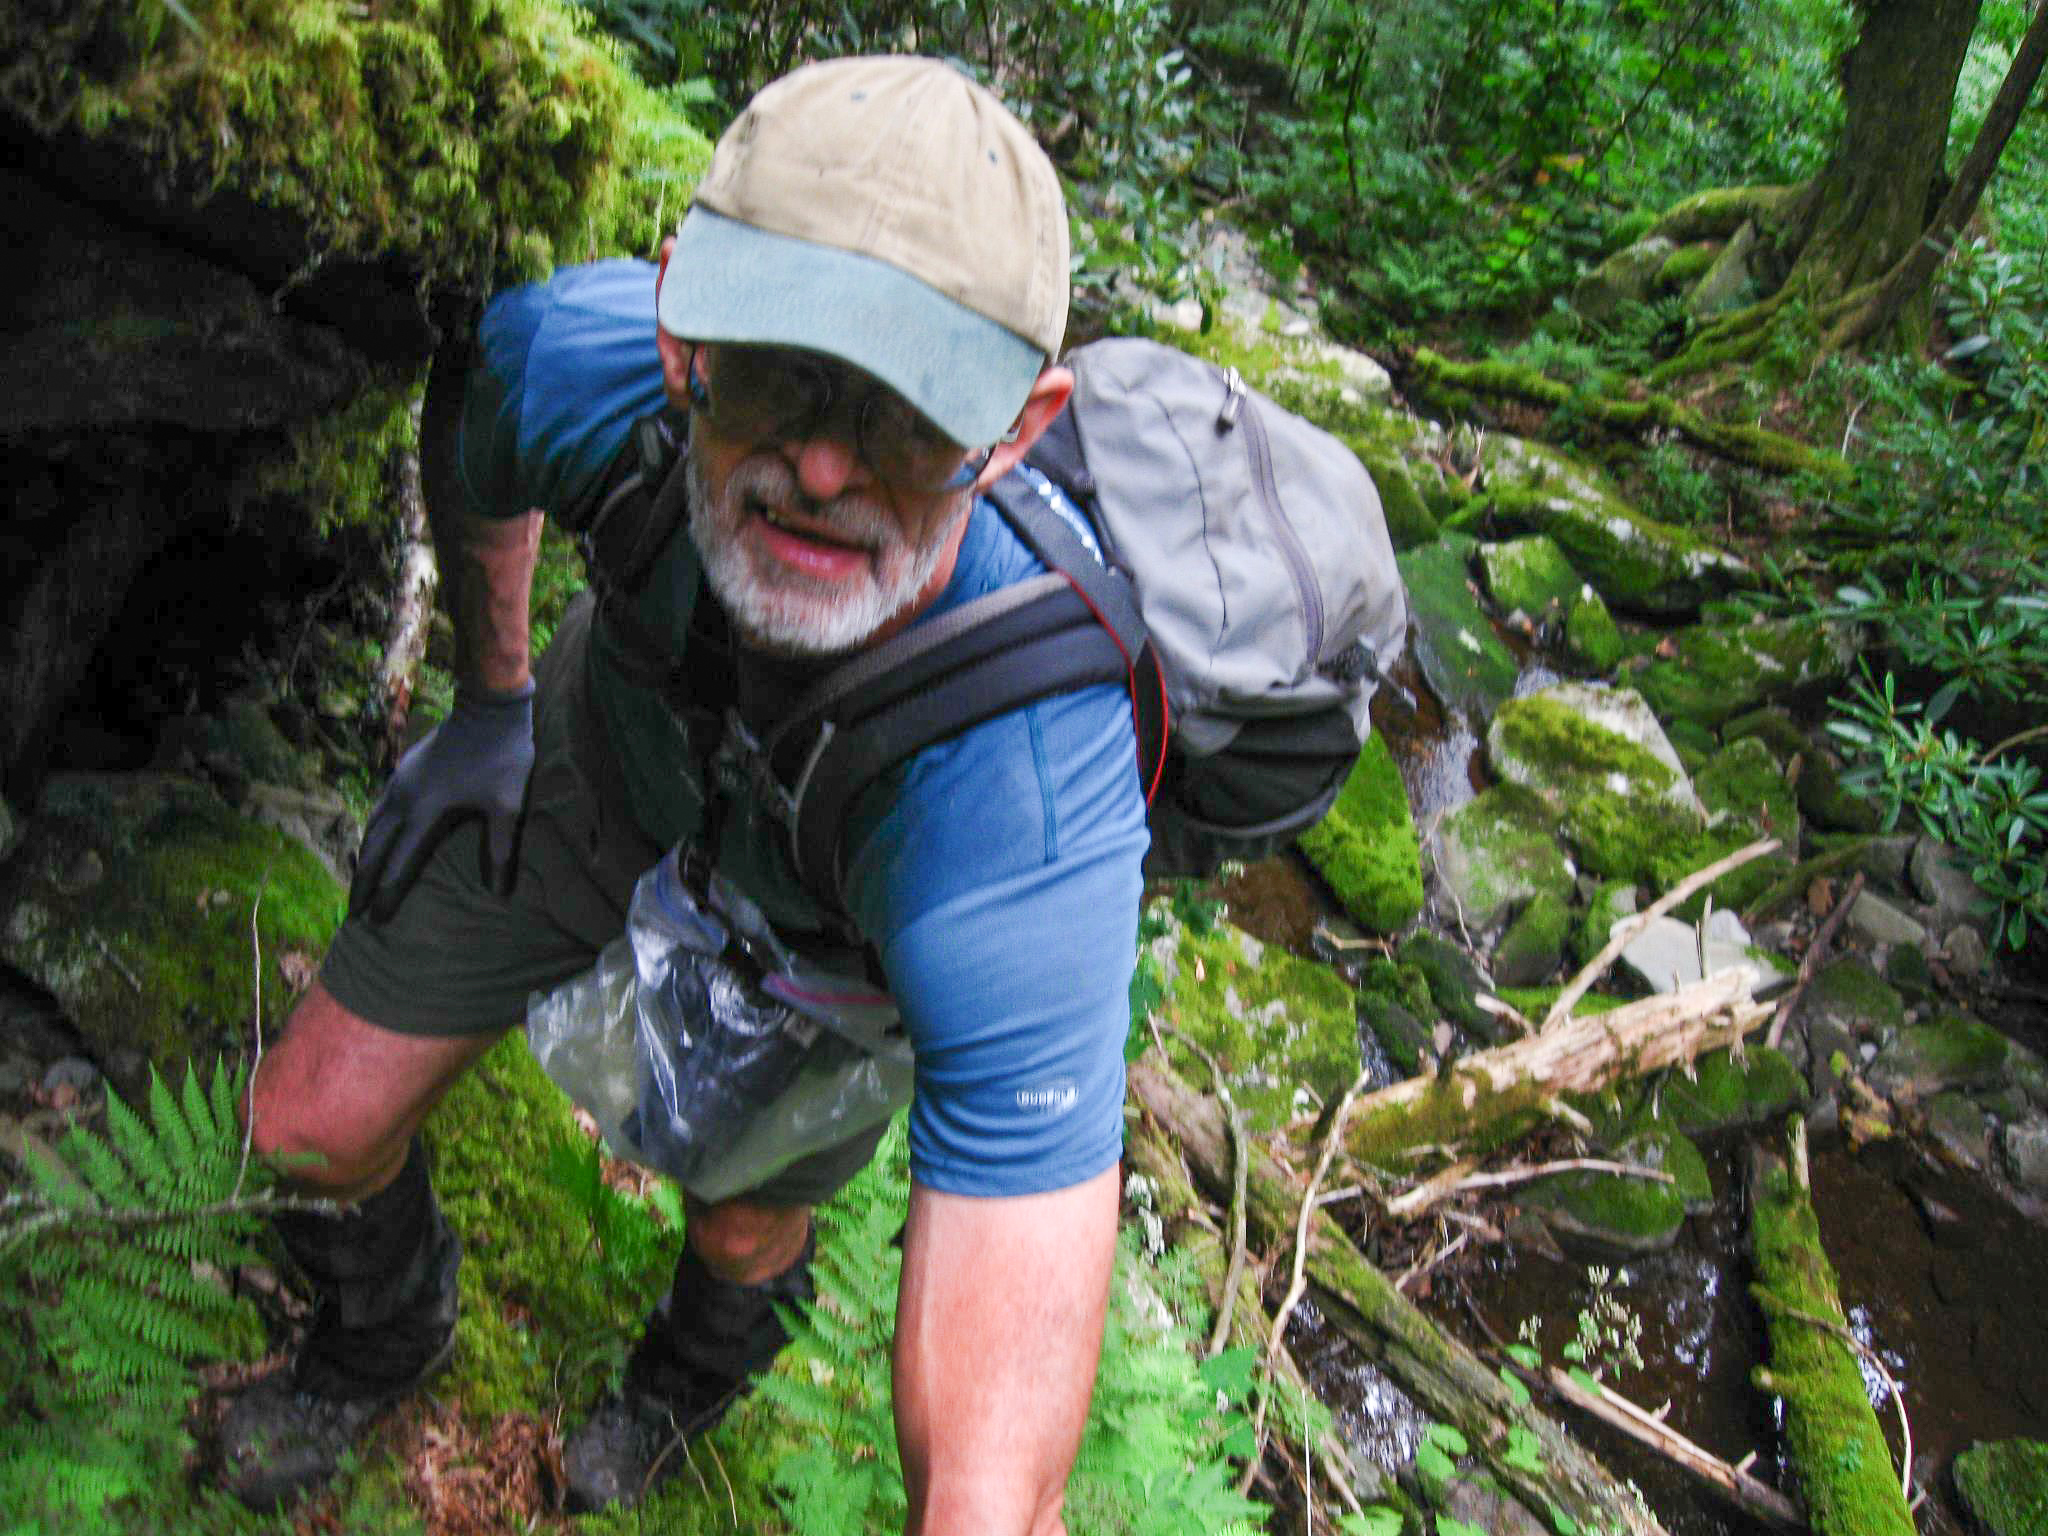 Dave on Roaring Fork Branch - Photo by Seth O'Shields